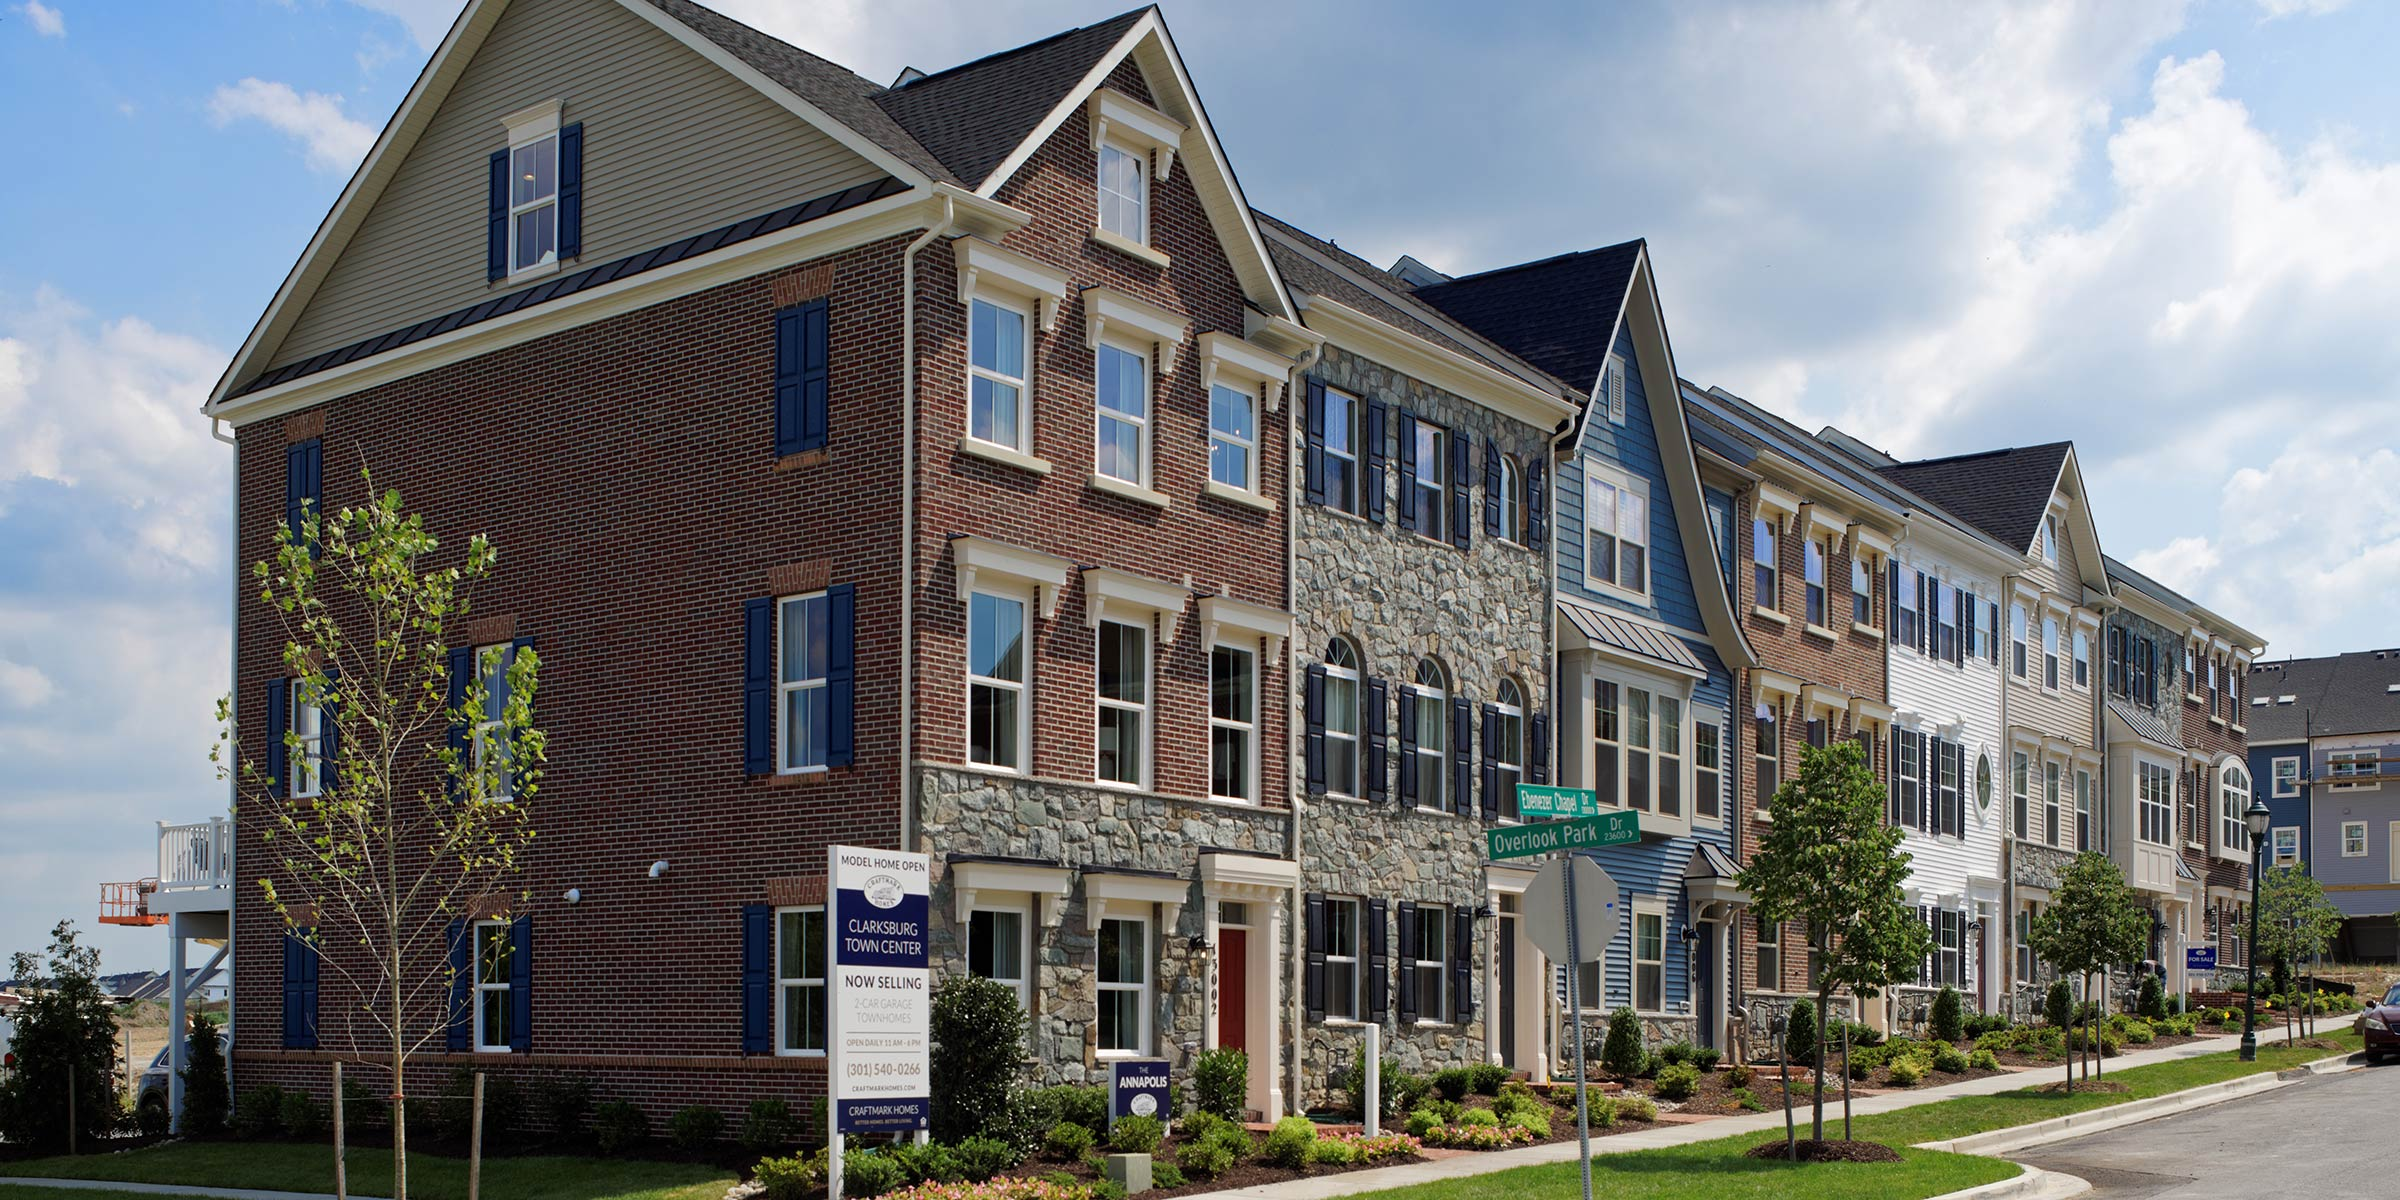 The Annapolis Floor Plan, Up to 4 Levels, 2-Car Garage, 3-4 BR, Townhomes in Clarksburg MD, Craftmark Homes